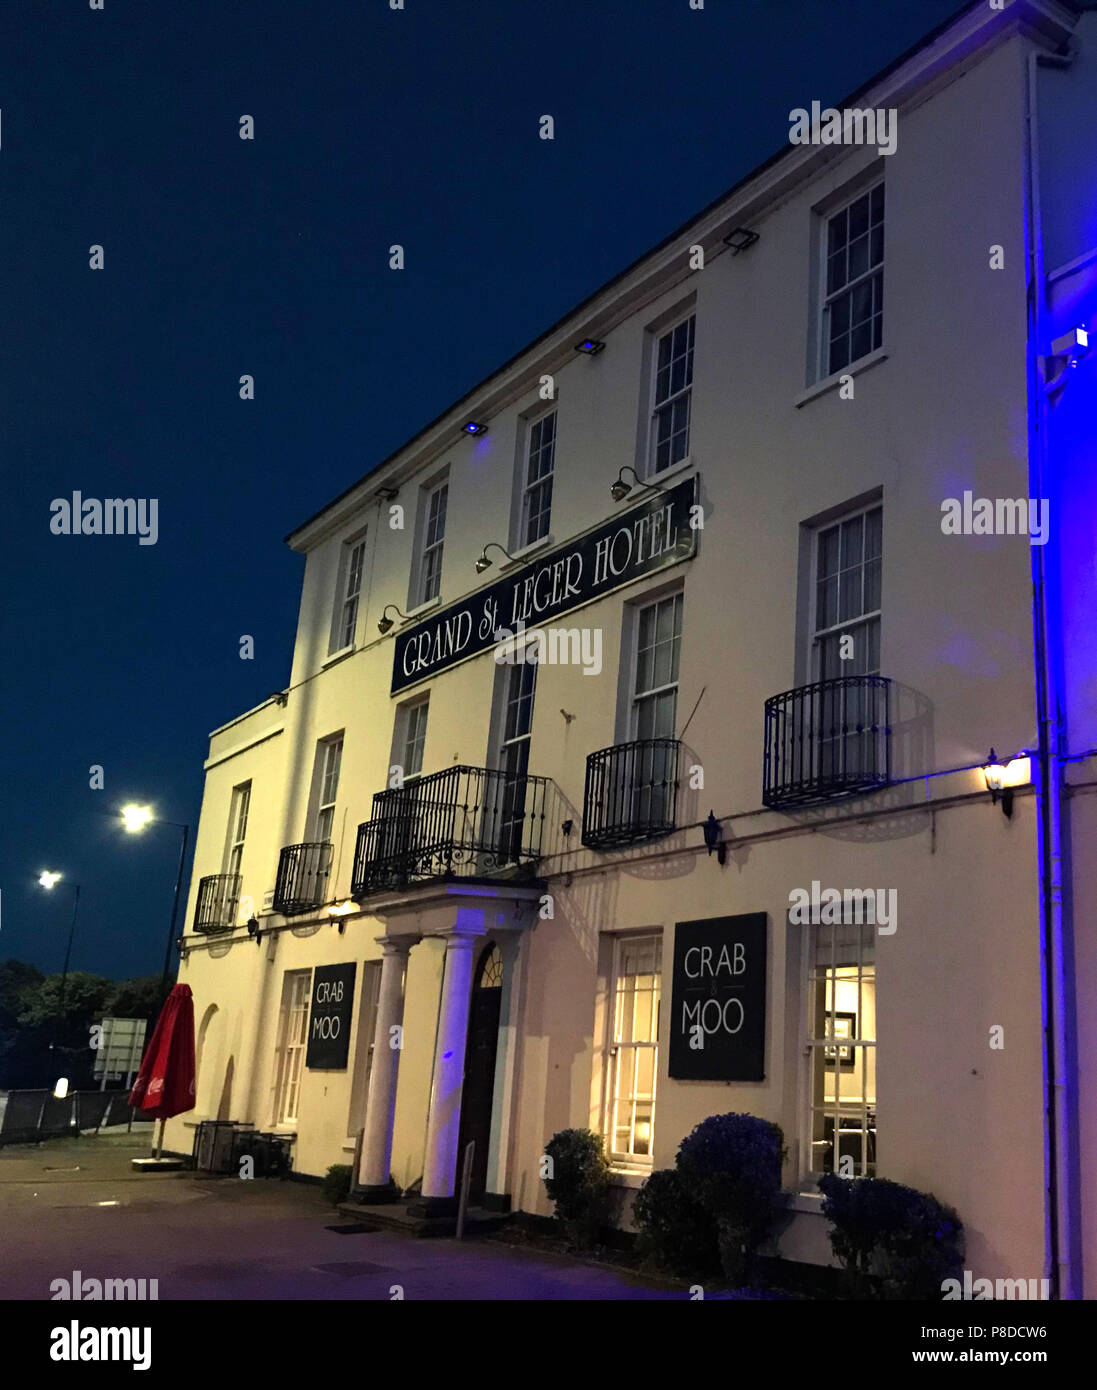 Grand St Leger Hotel at dusk, racecourse hotel, Bennetthorpe, Doncaster, South Yorkshire, England, UK,  DN2 6AX - Stock Image